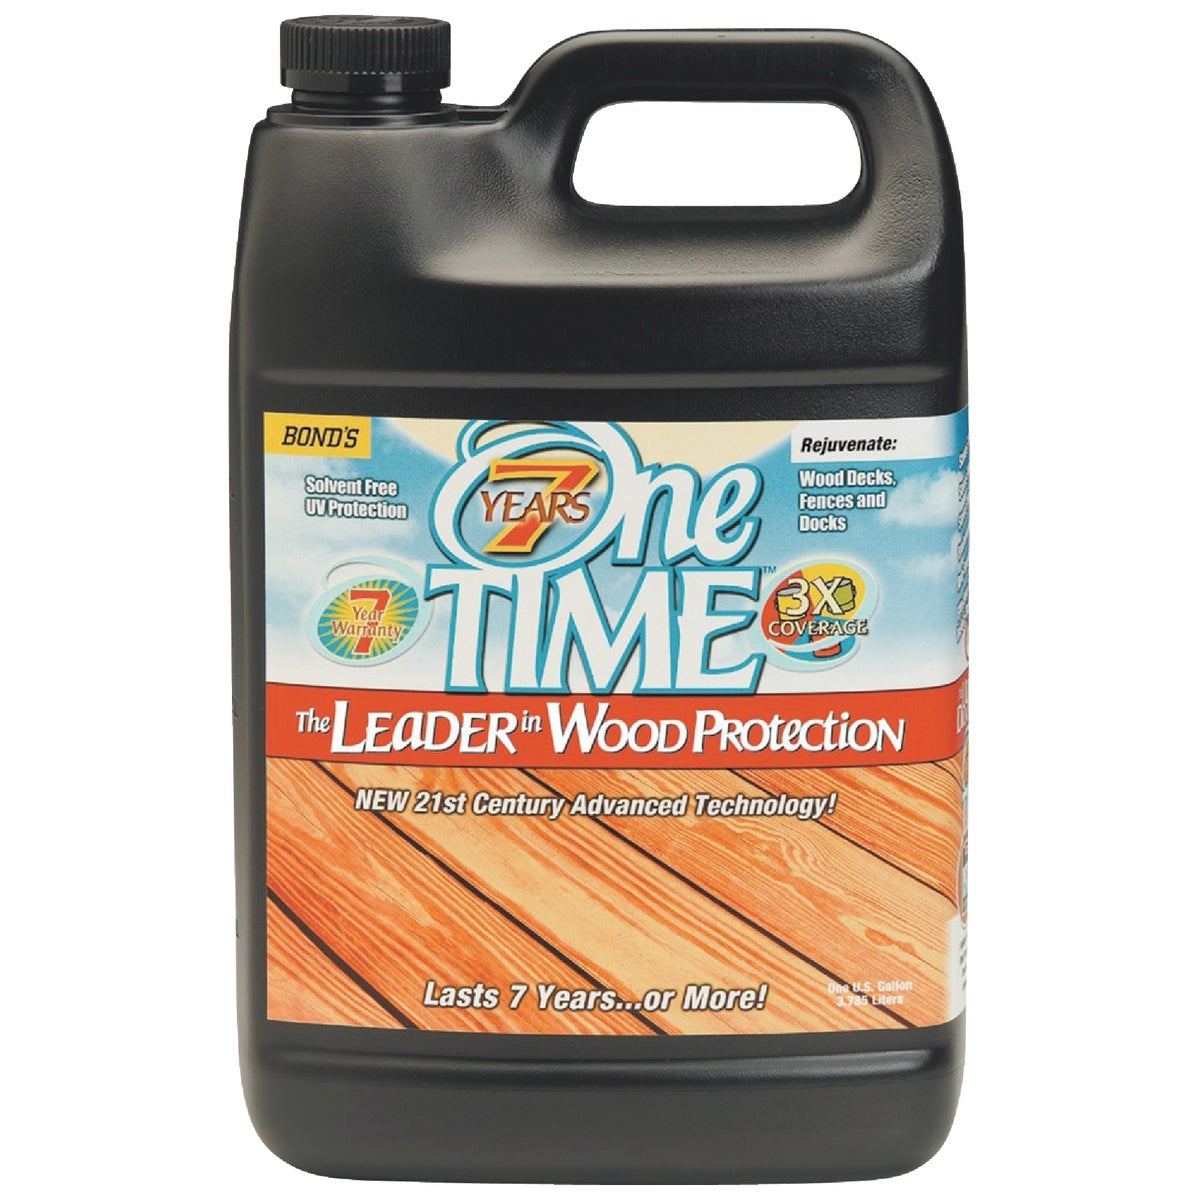 CLOVE BROWN WOOD SEALER - 00400 by Bond Distributing